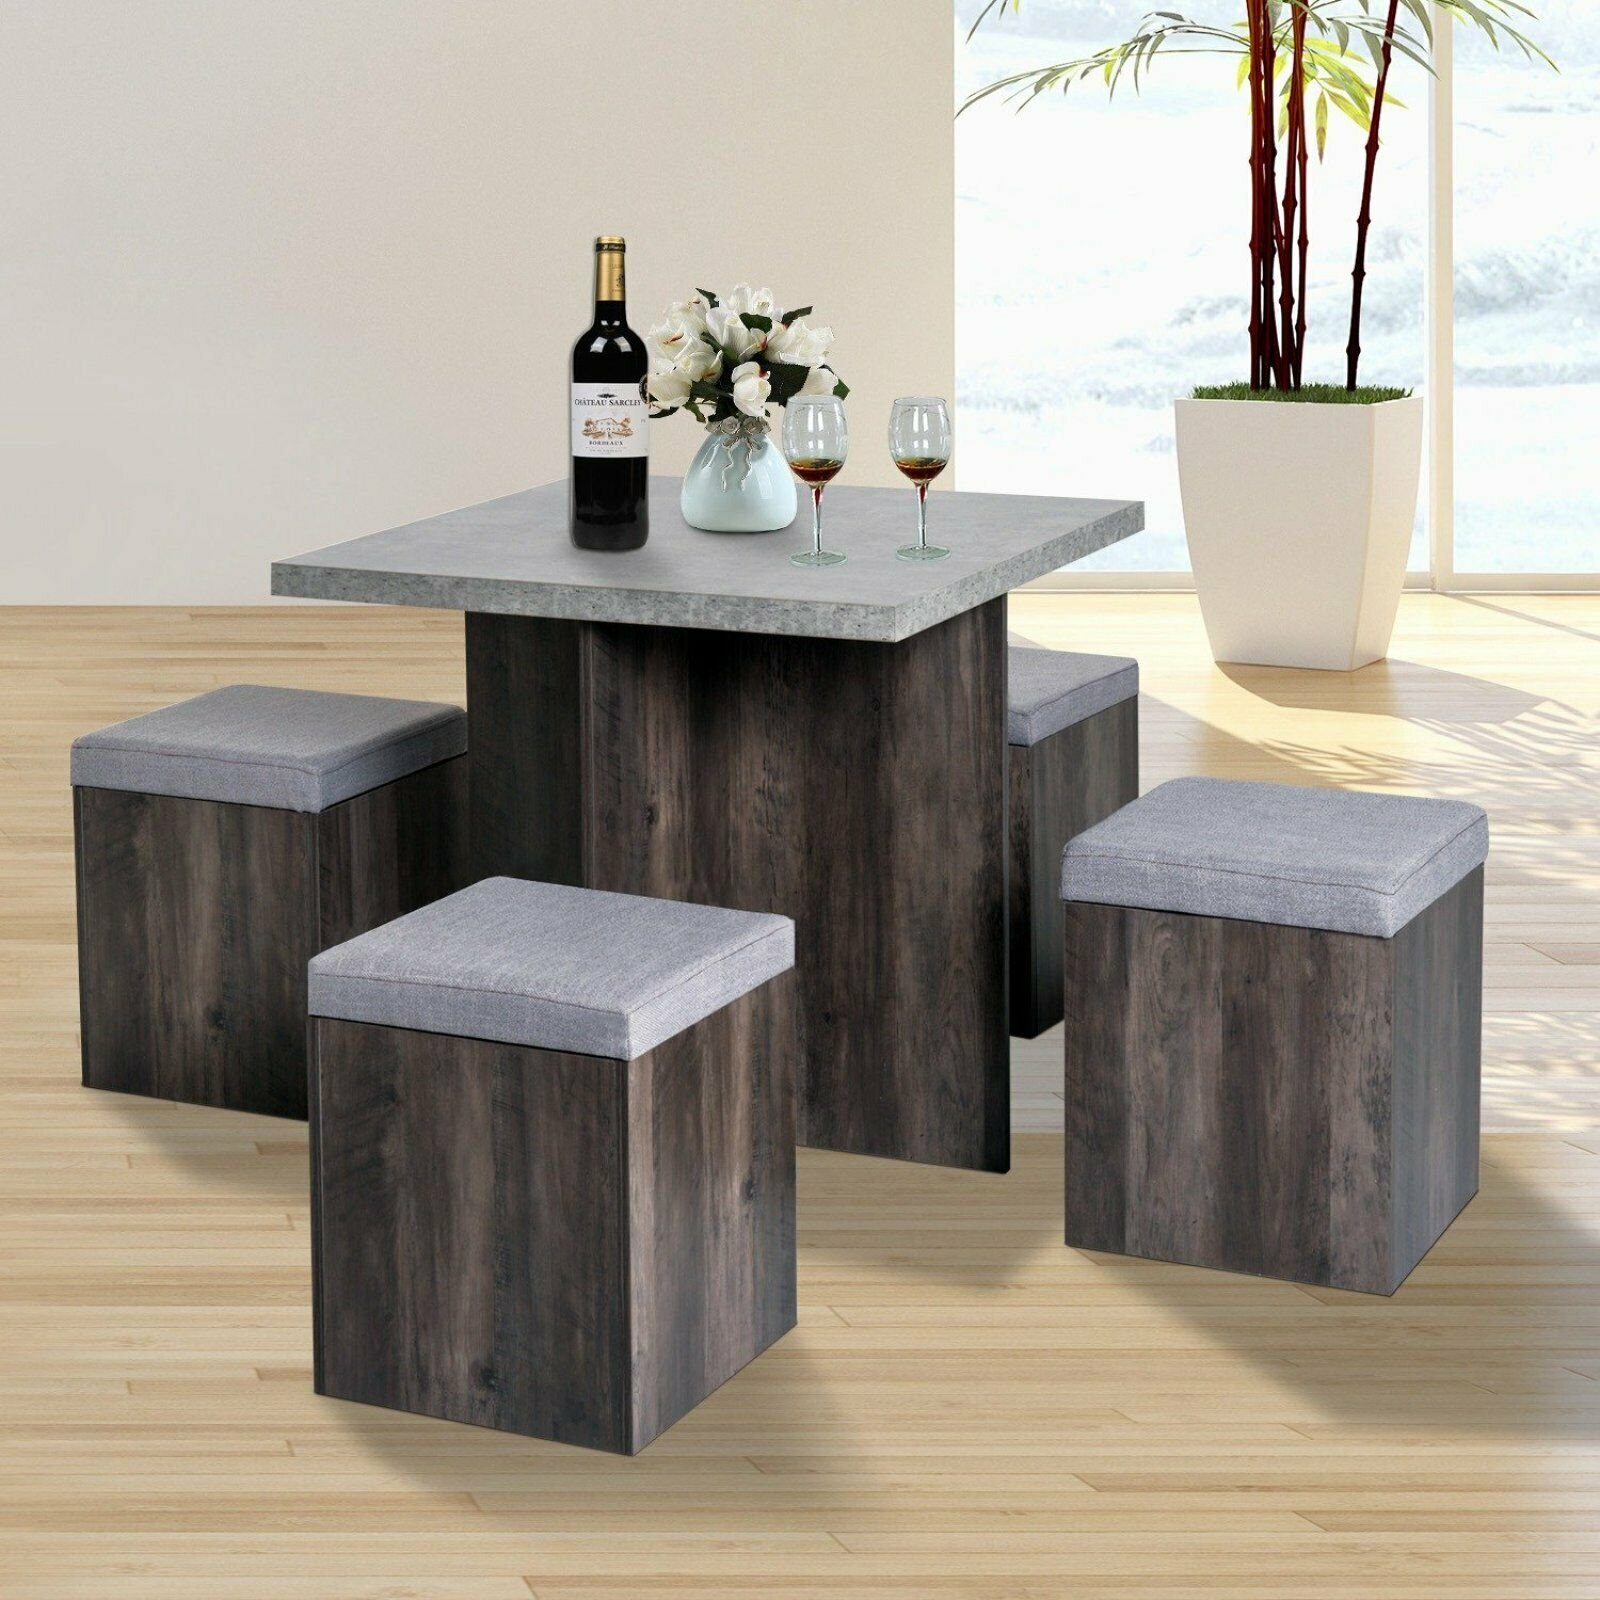 Details About Stowaway Dining Set Table And 4 Chairs Stools Compact Space Saver Wooden Kitchen